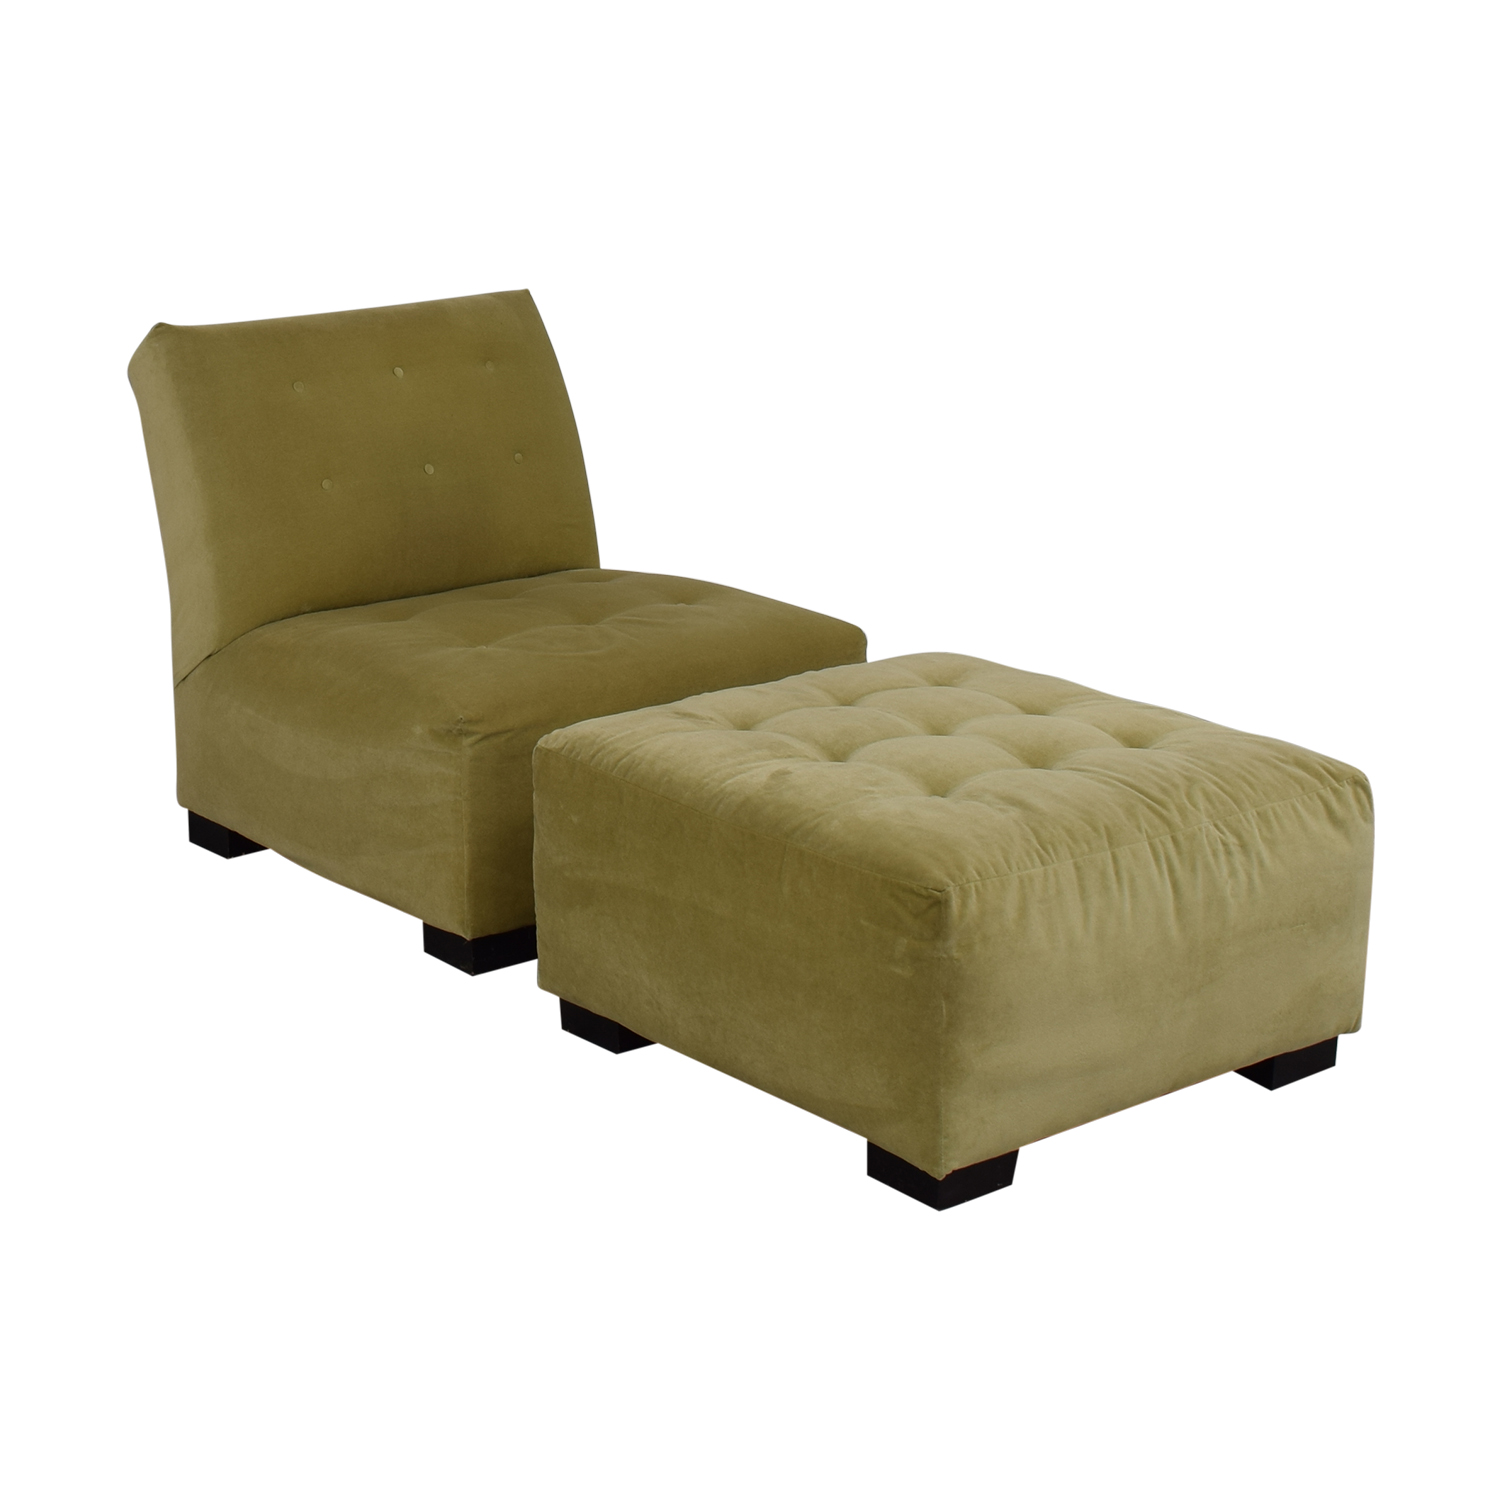 shop Crate & Barrel Sage Green Tufted Lounge Chair & Ottoman Crate & Barrel Accent Chairs